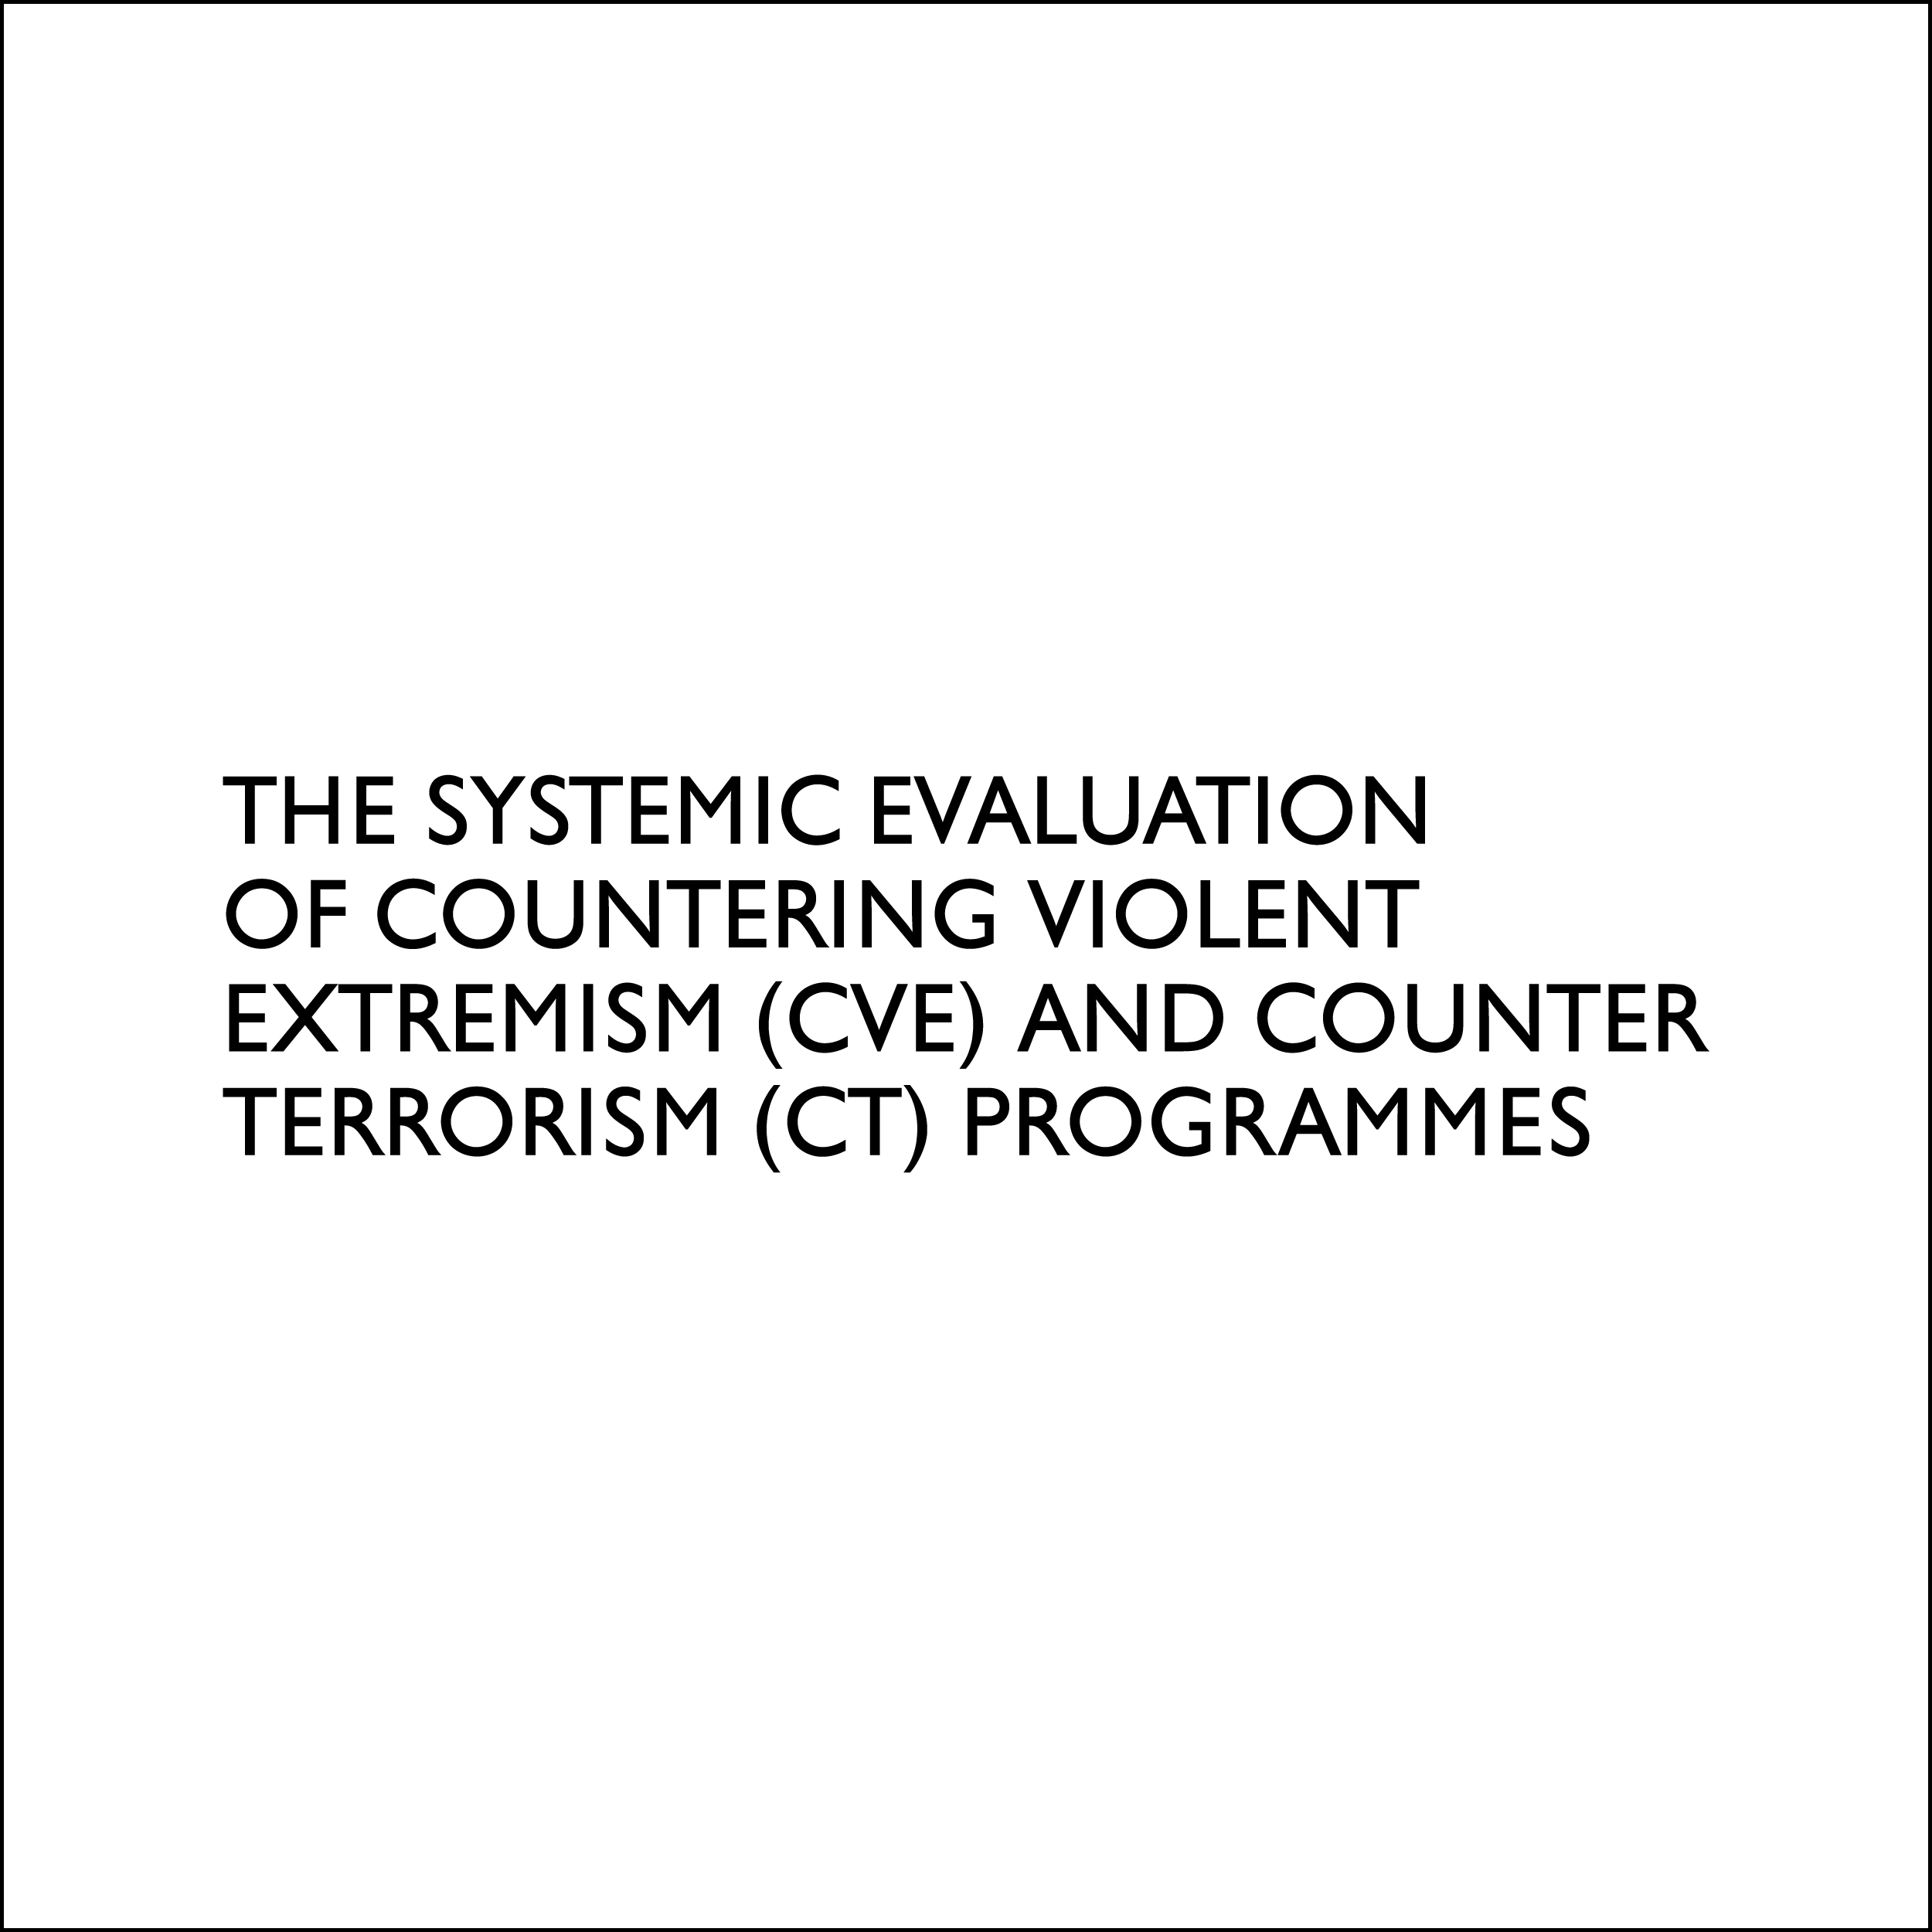 The Systemic Evaluation of Countering Violent Extremism (CVE) and Counter Terrorism (CT) Programmes |journal publication